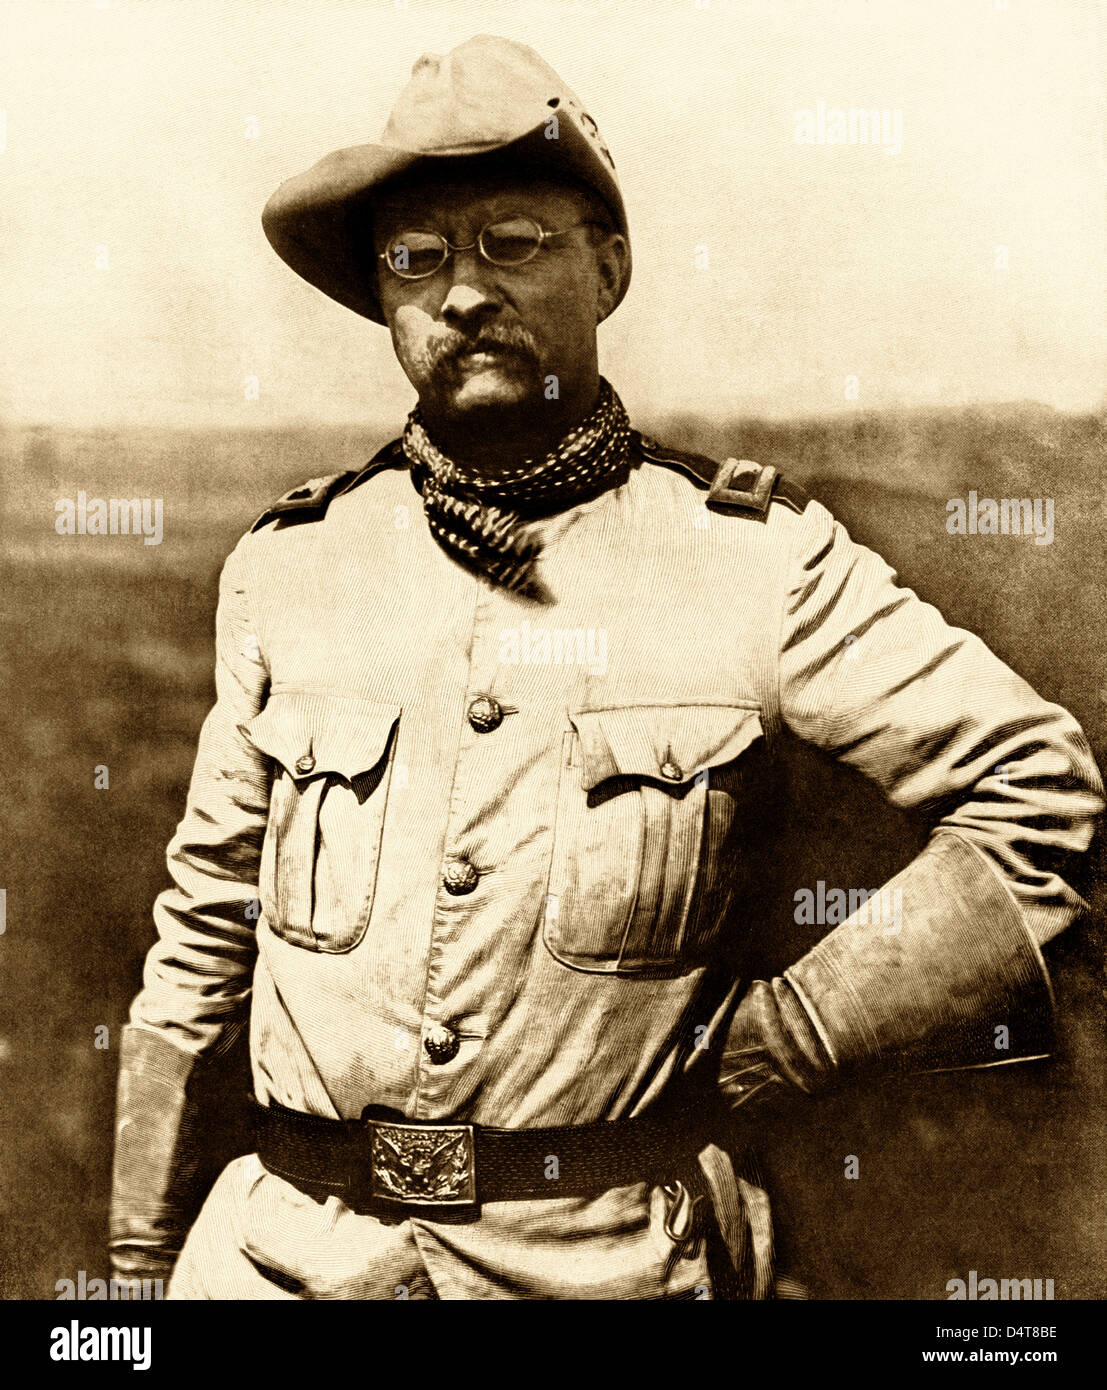 Vintage American history photo of Colonel Theodore Roosevelt wearing his military uniform during the Spanish-American - Stock Image